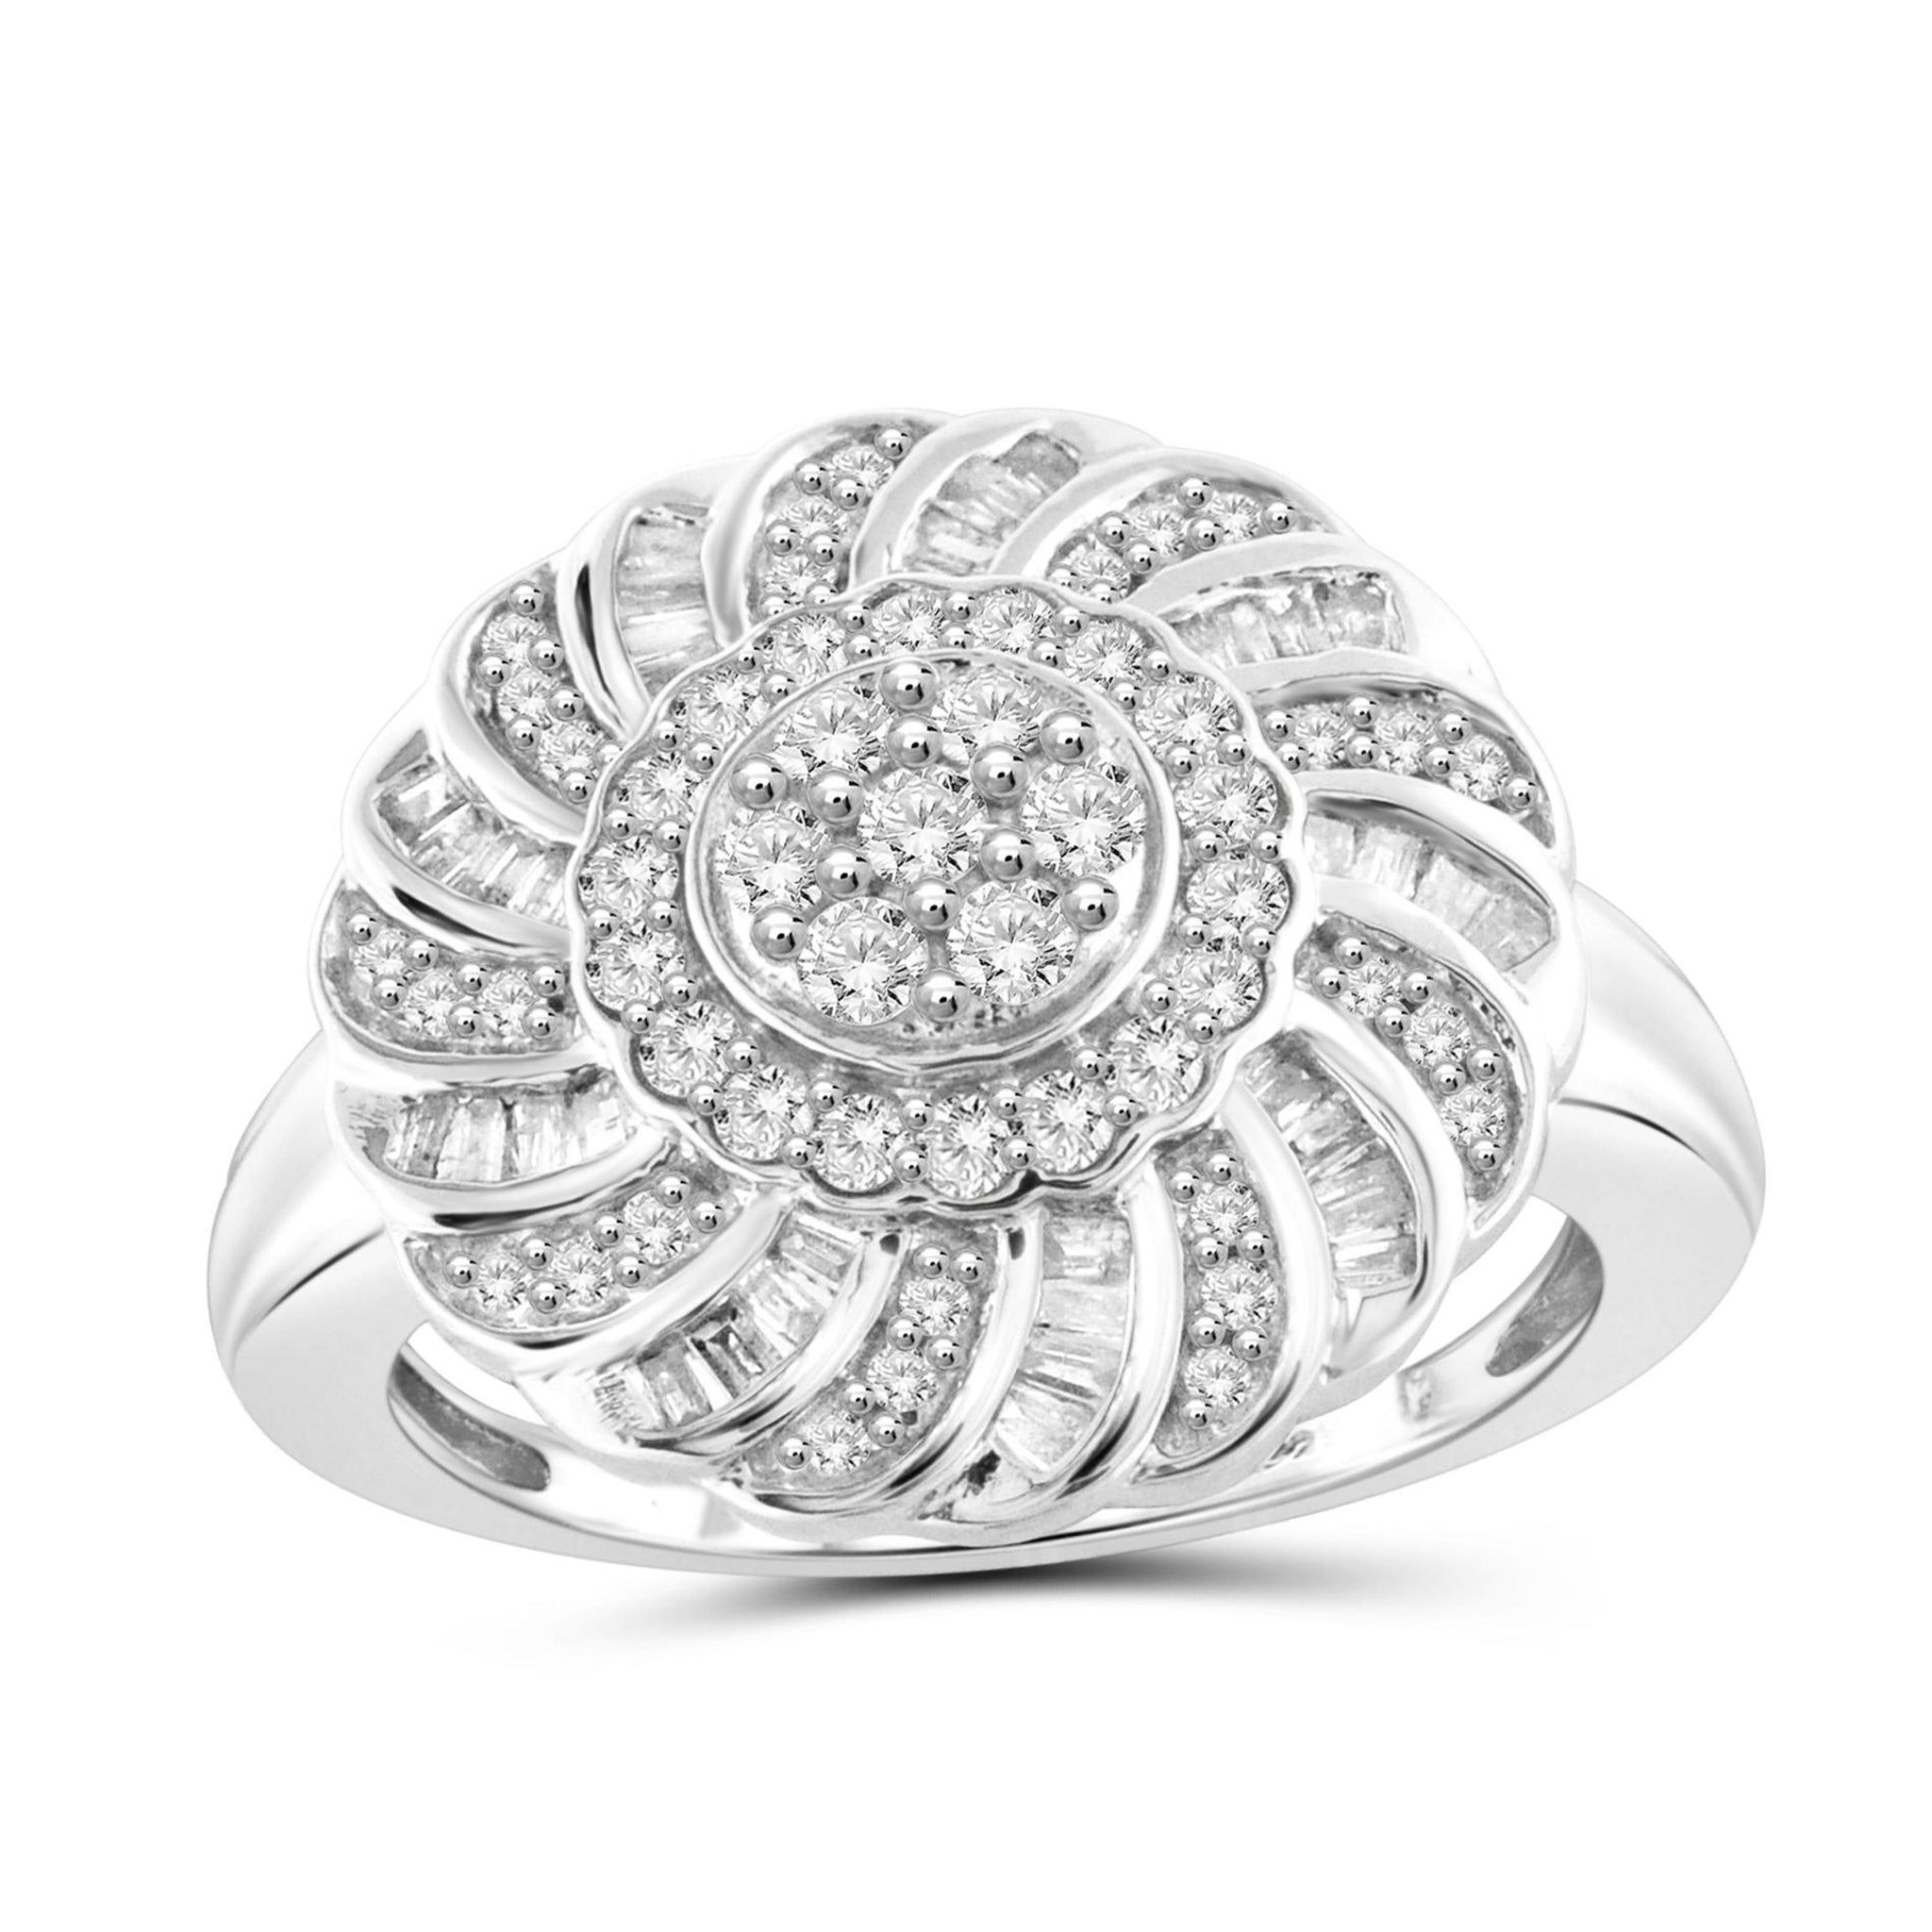 JewelersClub 1 Carat T.W. White Diamond Sterling Silver Floral Ring